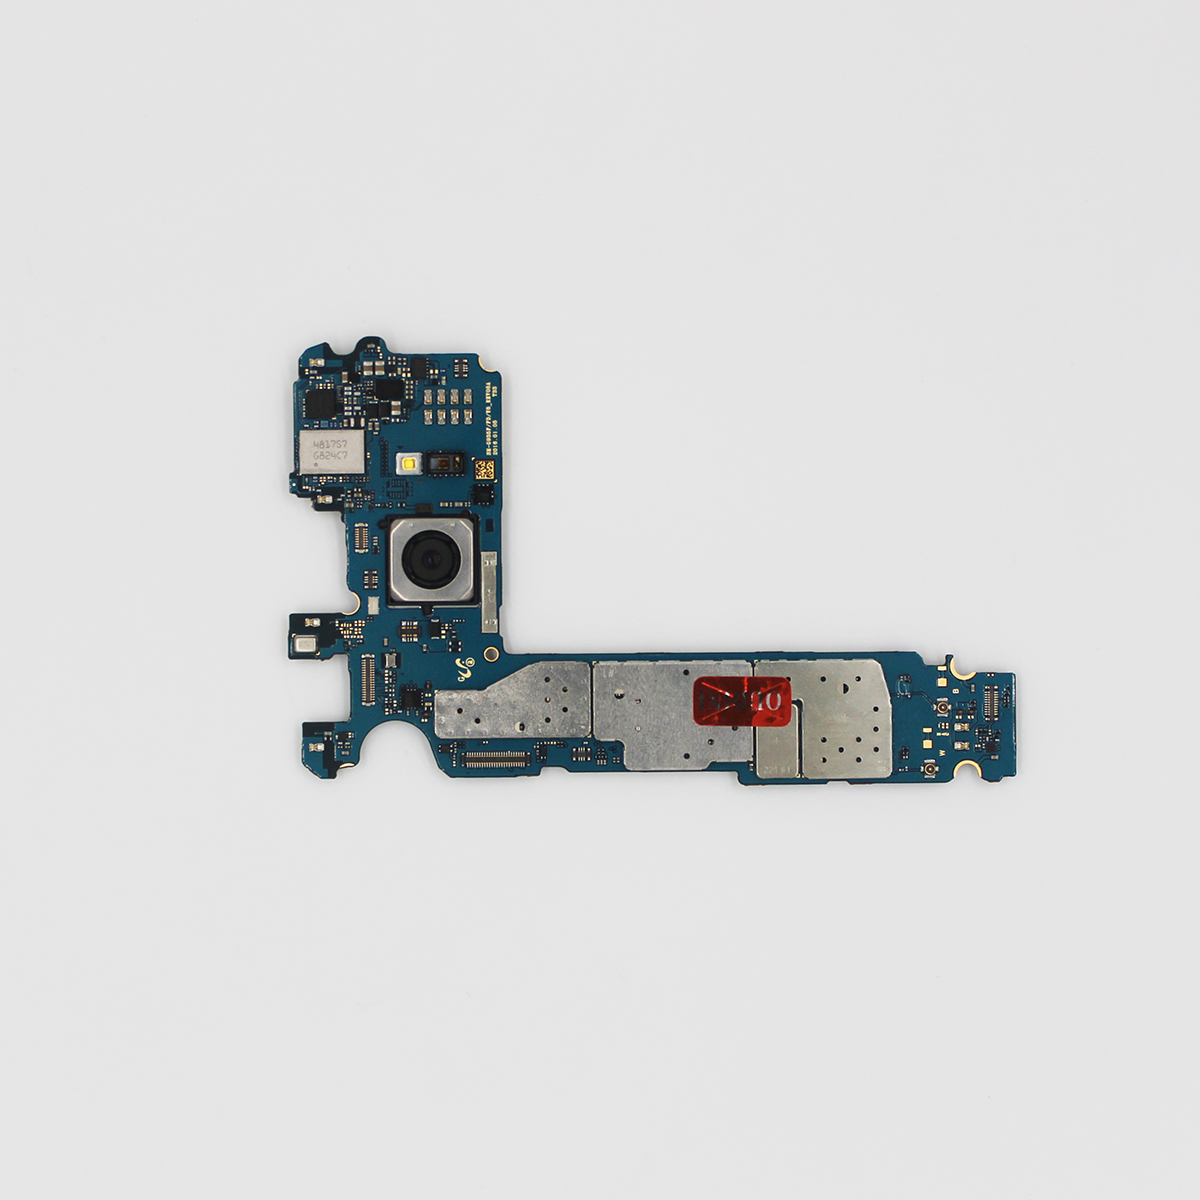 Image 2 - Tigenkey Unlocked Motherboard For Original Samsung Galaxy S7 edge G935F Motherboard  Working 100% Test & Free Shipping-in Mobile Phone Circuits from Cellphones & Telecommunications